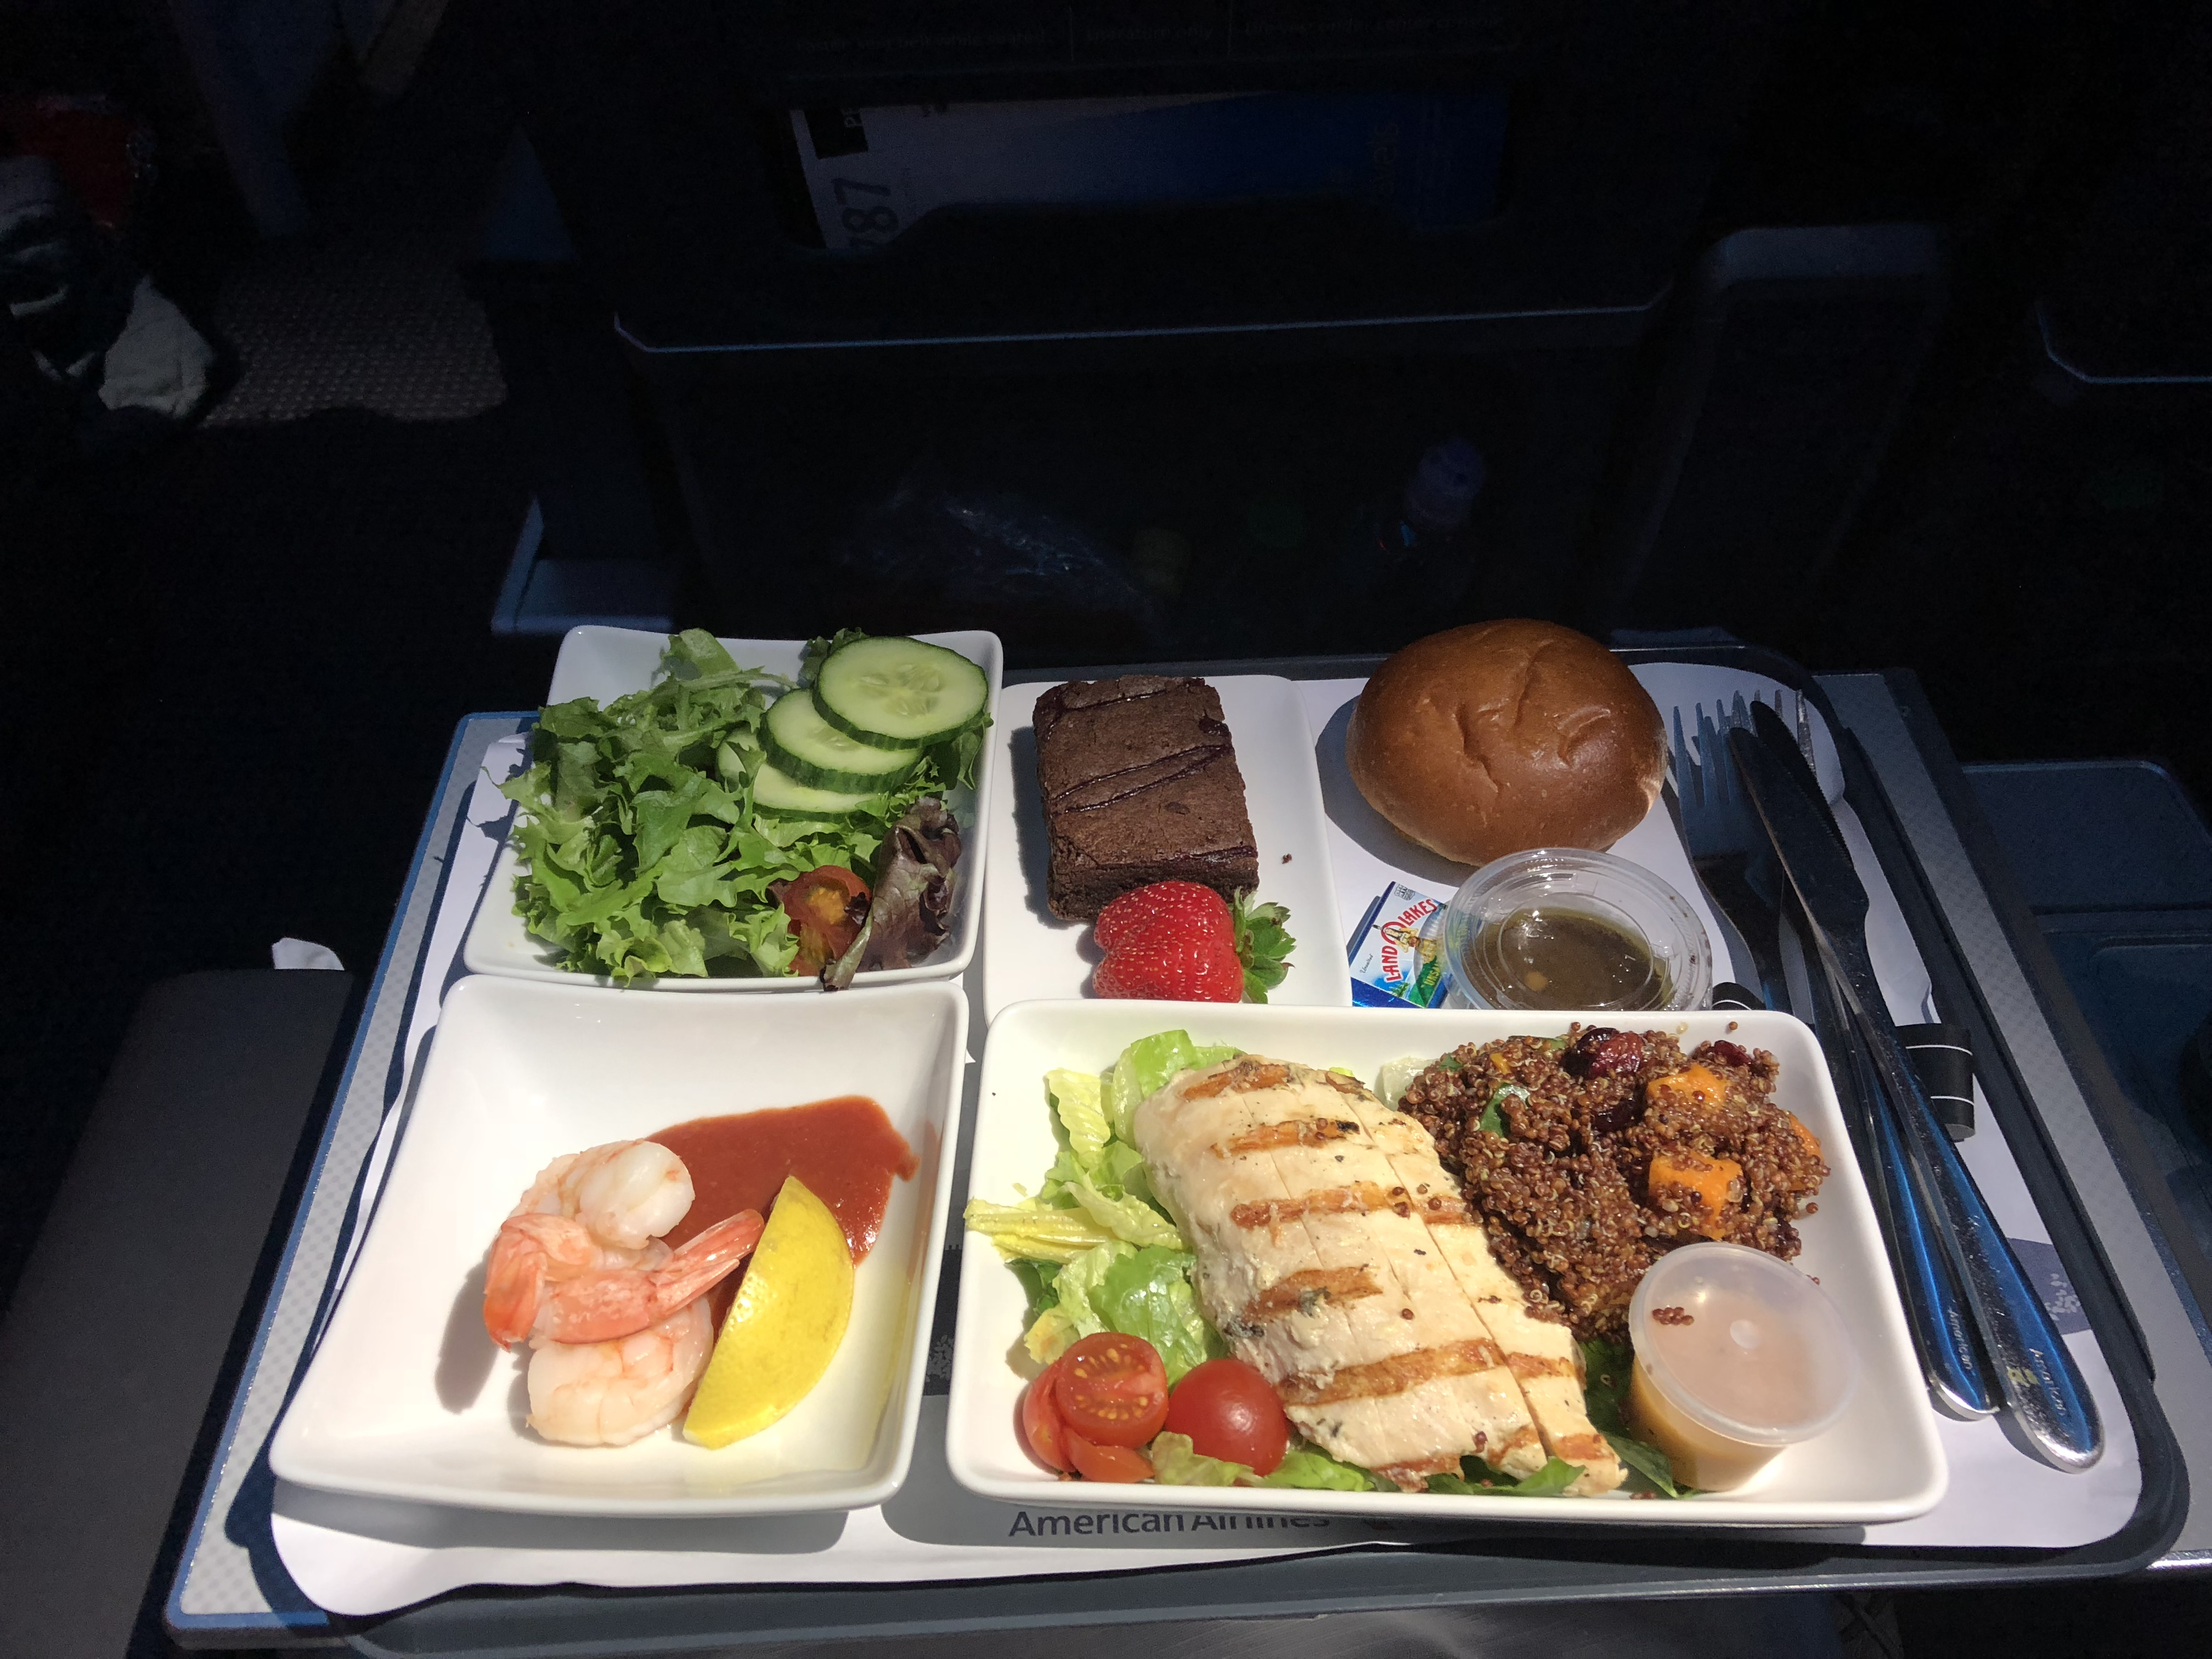 American Airlines Premium Economy Dinner Service LAX-AKL